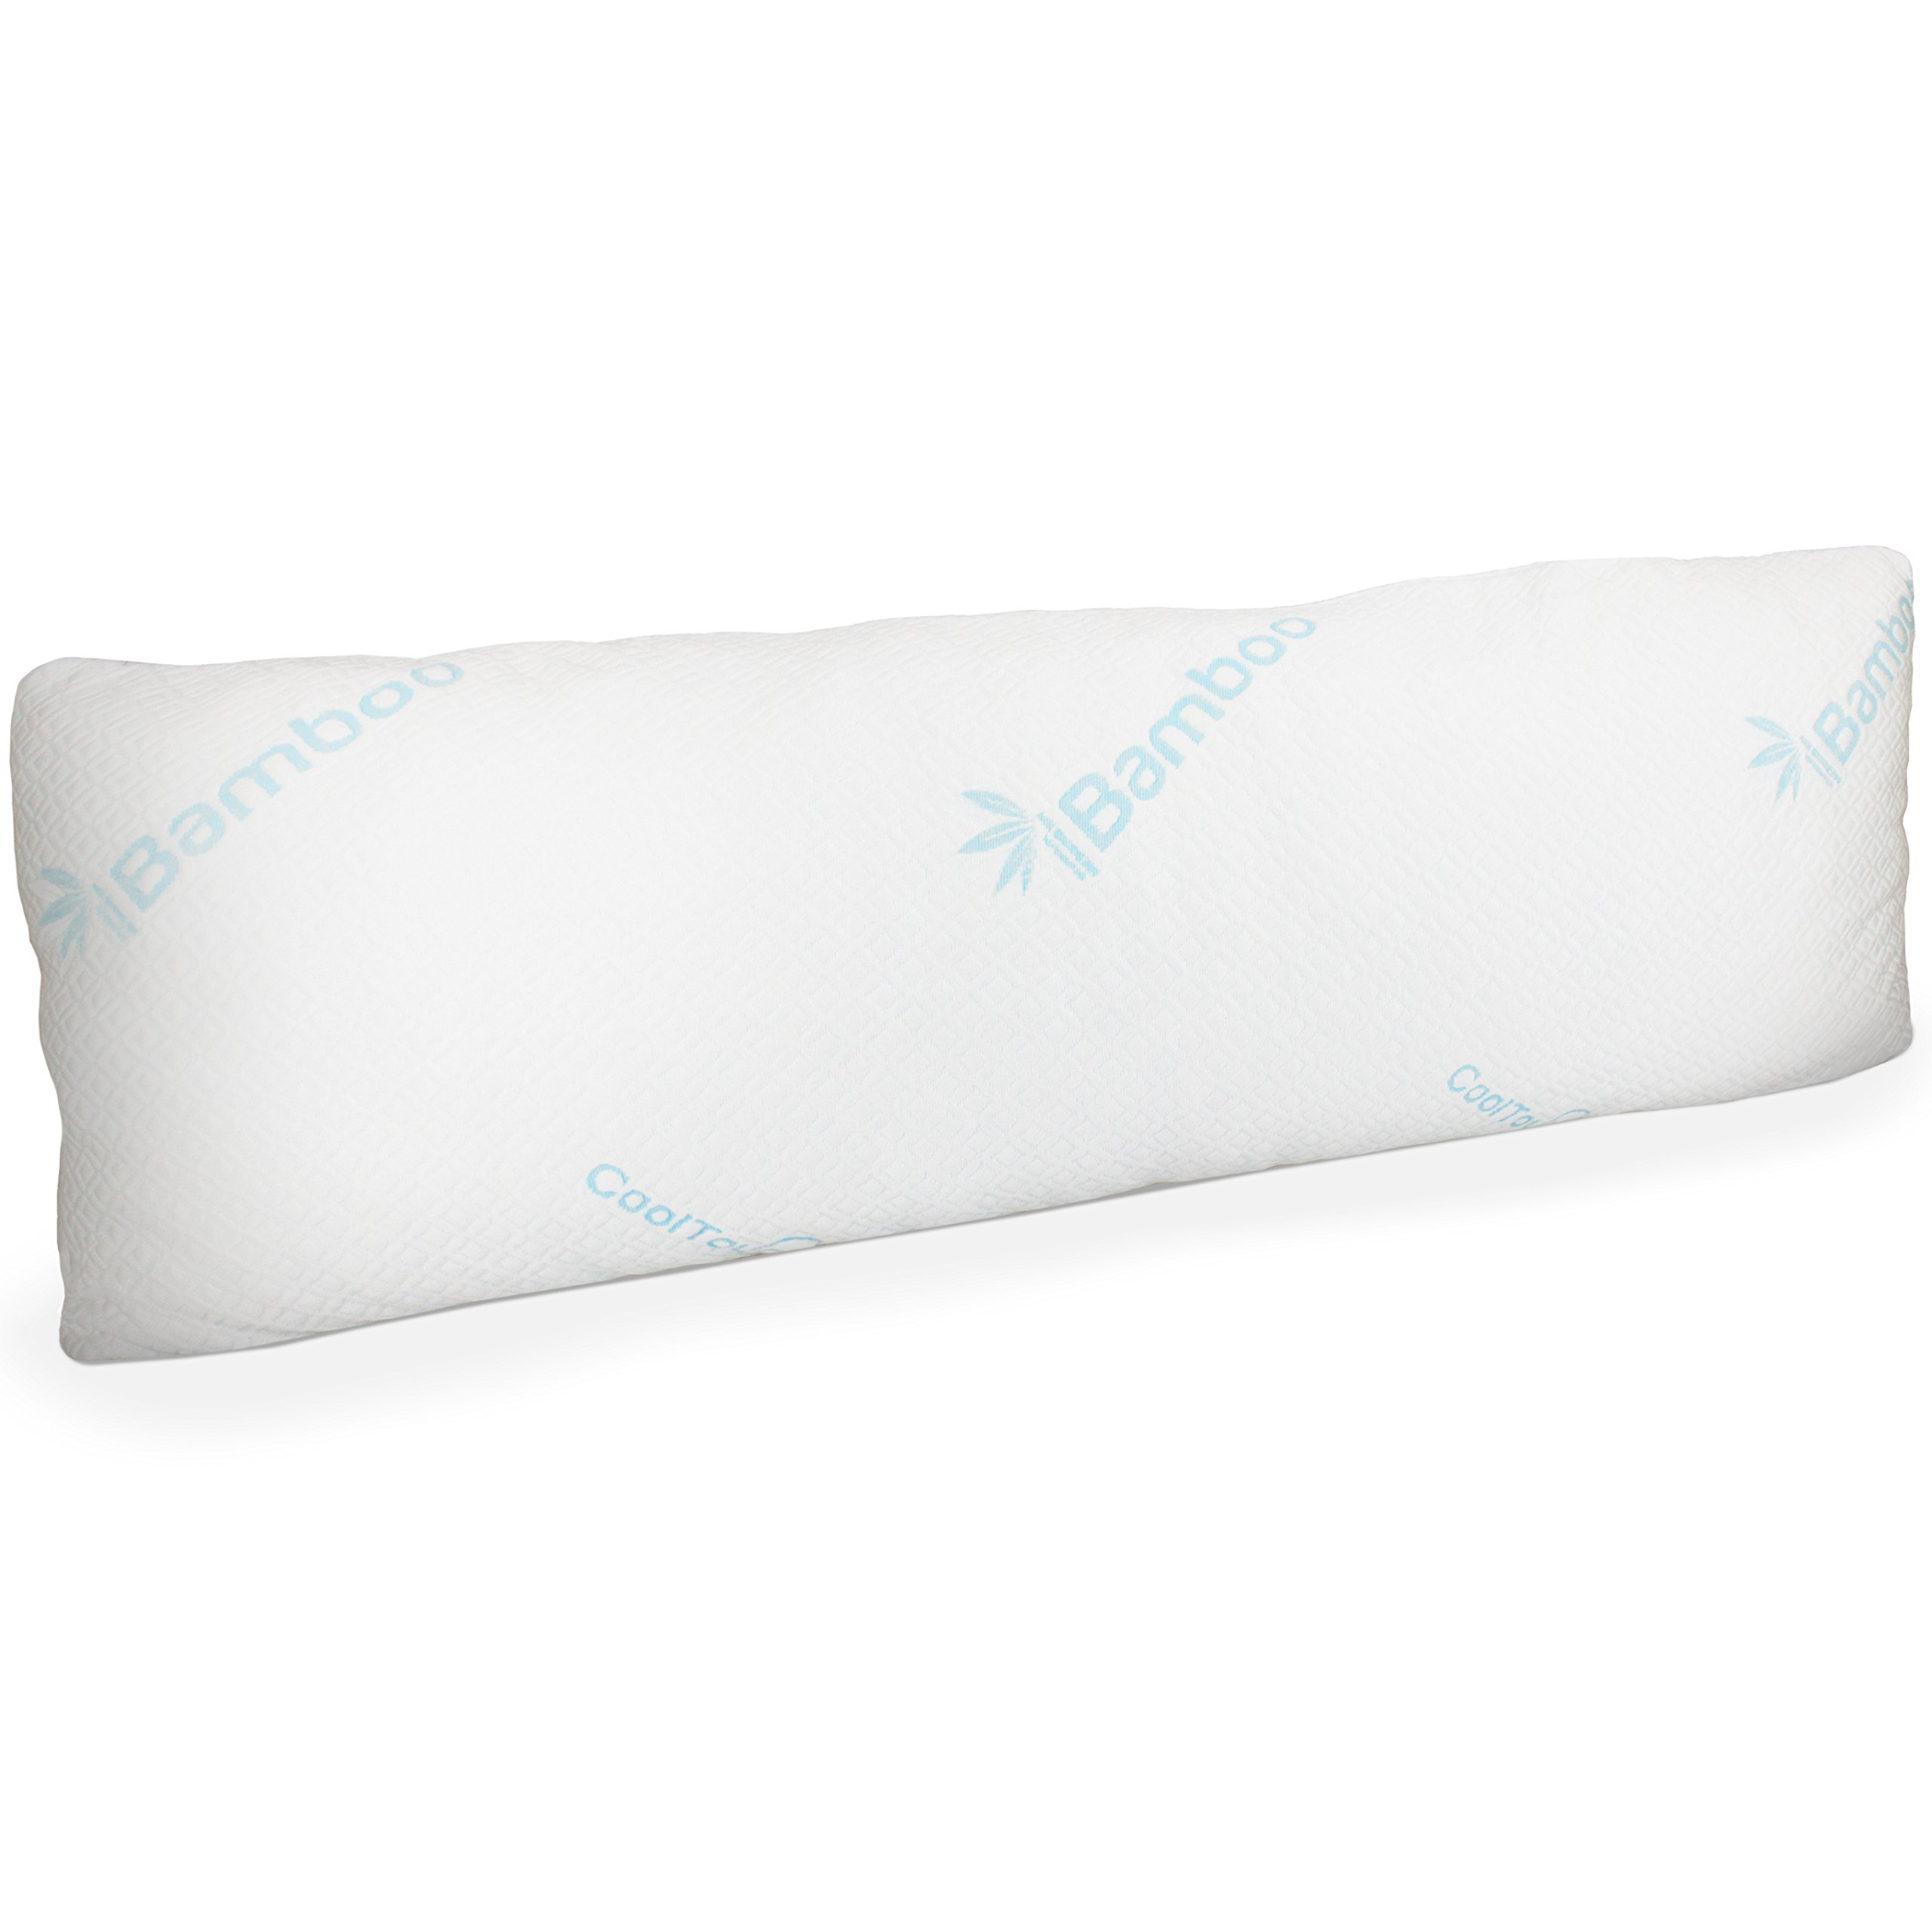 memory foam body pillow with bamboo cover large firm pillow for adults with 682318749422 ebay. Black Bedroom Furniture Sets. Home Design Ideas